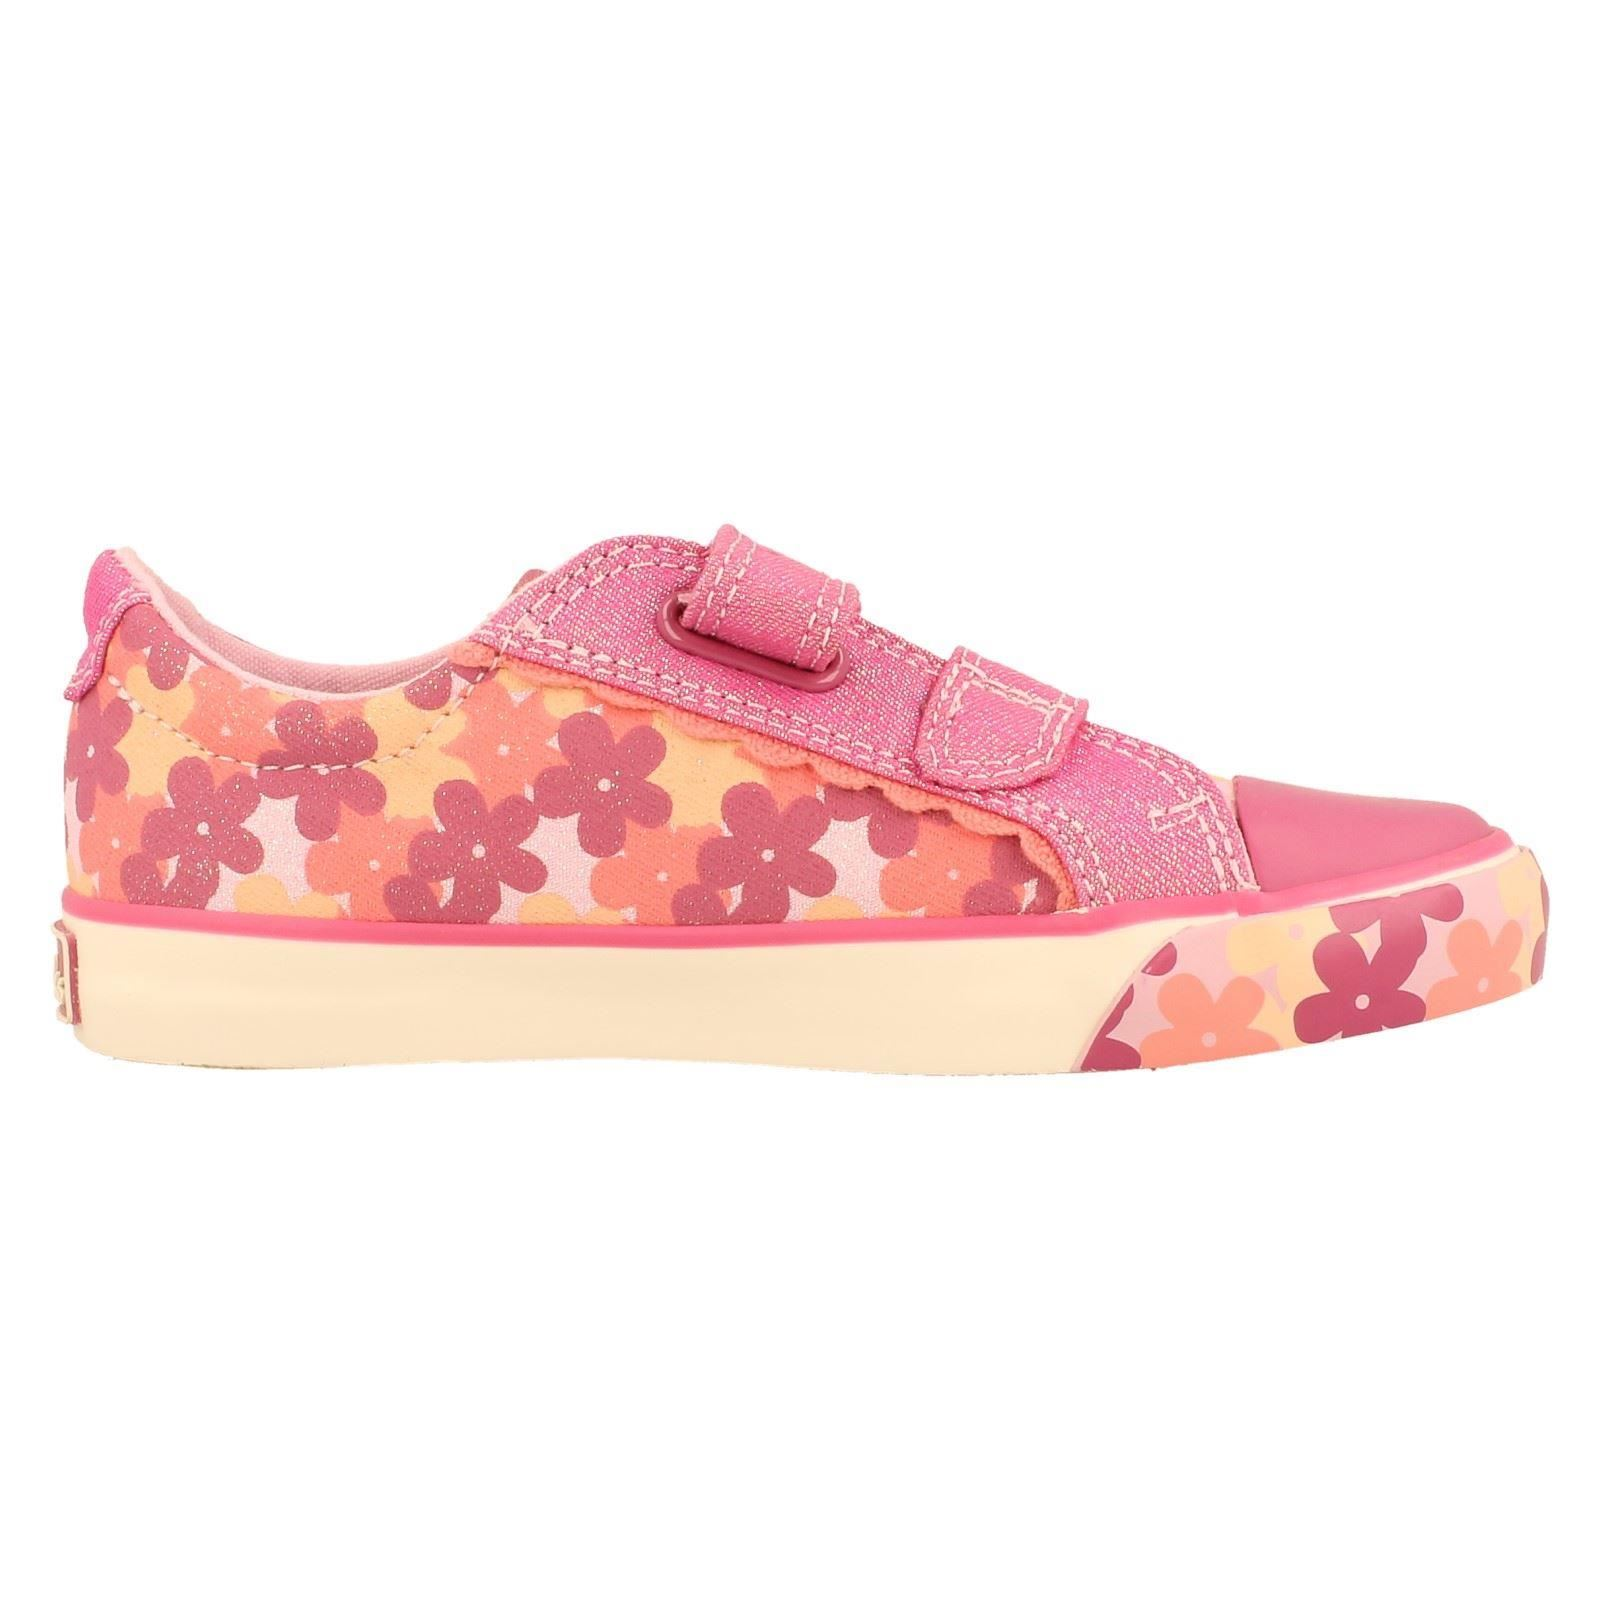 Girls Clarks Canvas Shoes Style Gracie Mae-W